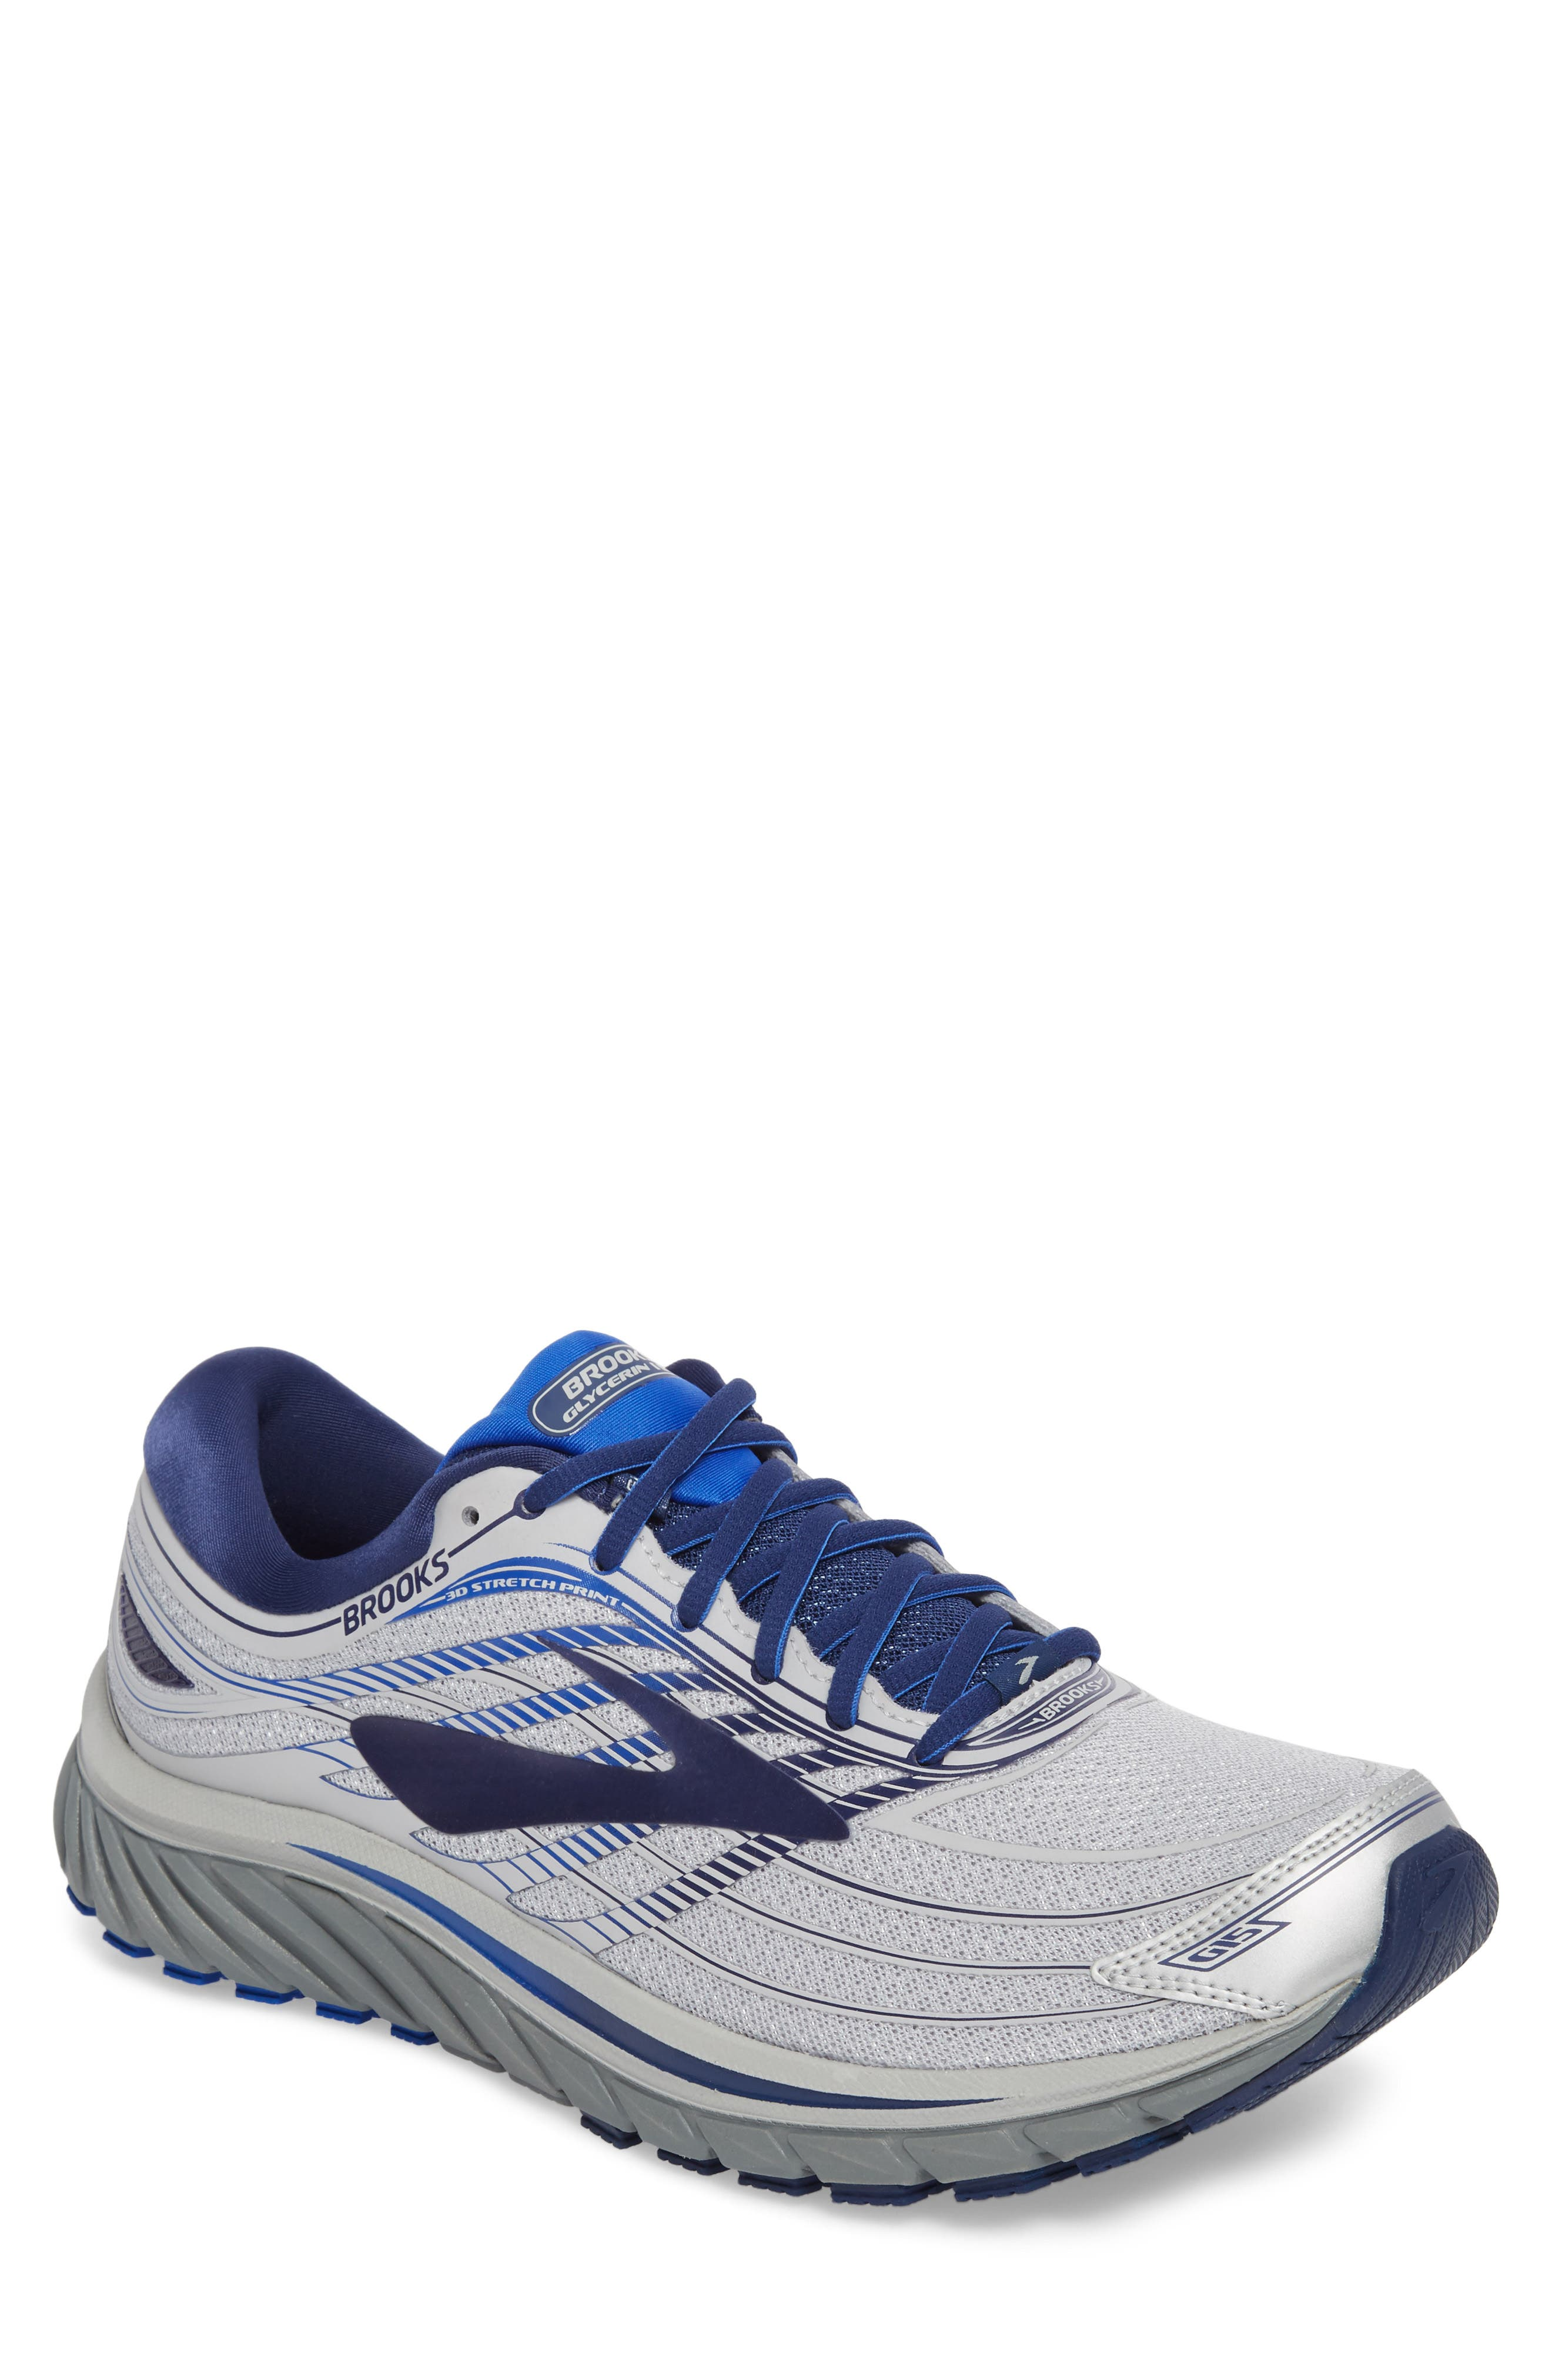 Glycerin 15 Running Shoe,                             Main thumbnail 1, color,                             036